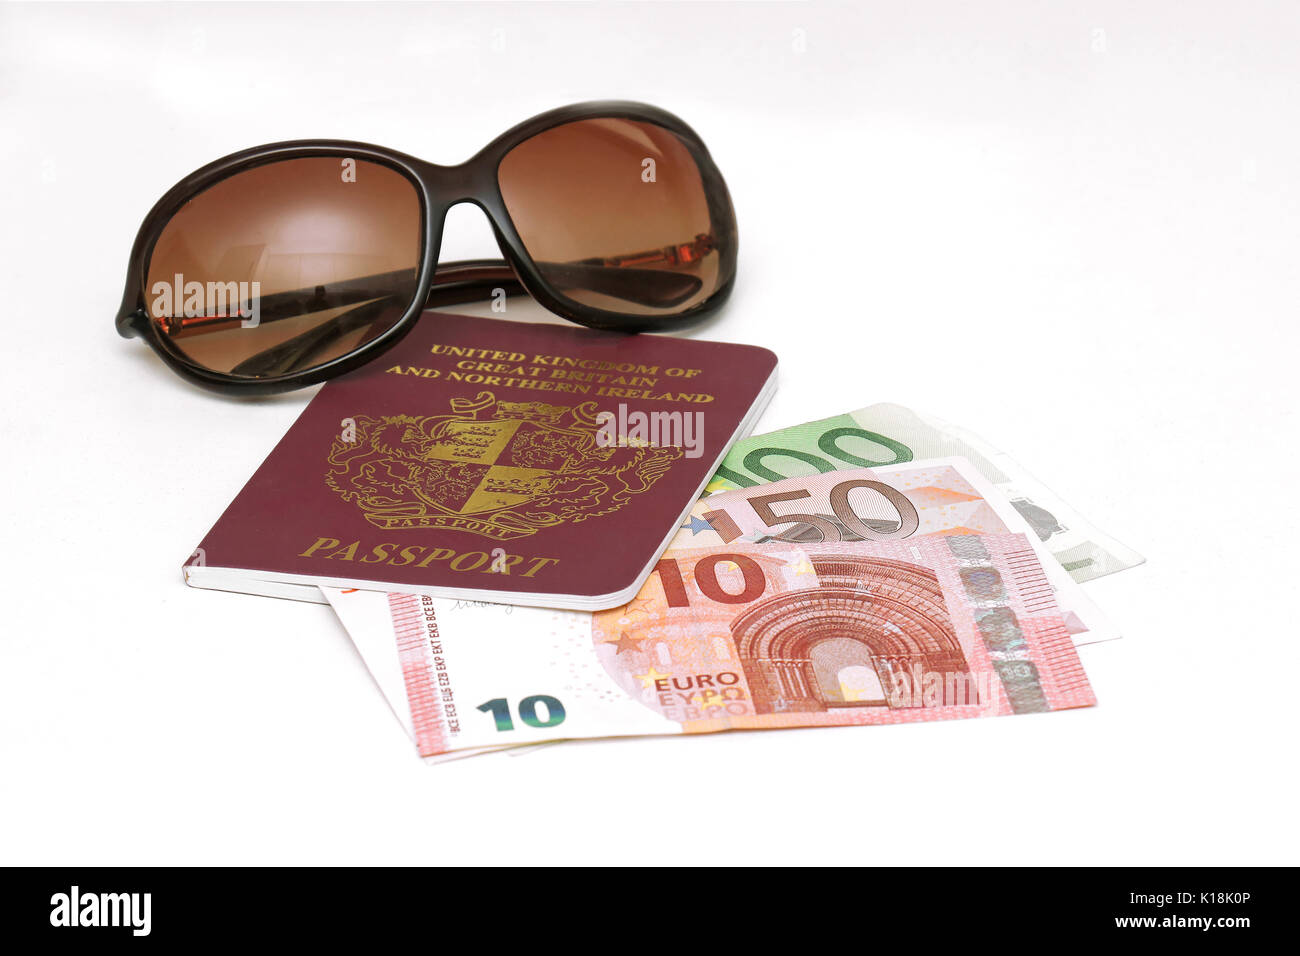 British passport with European money and sunglasses ready for summer vacation abroad - Stock Image